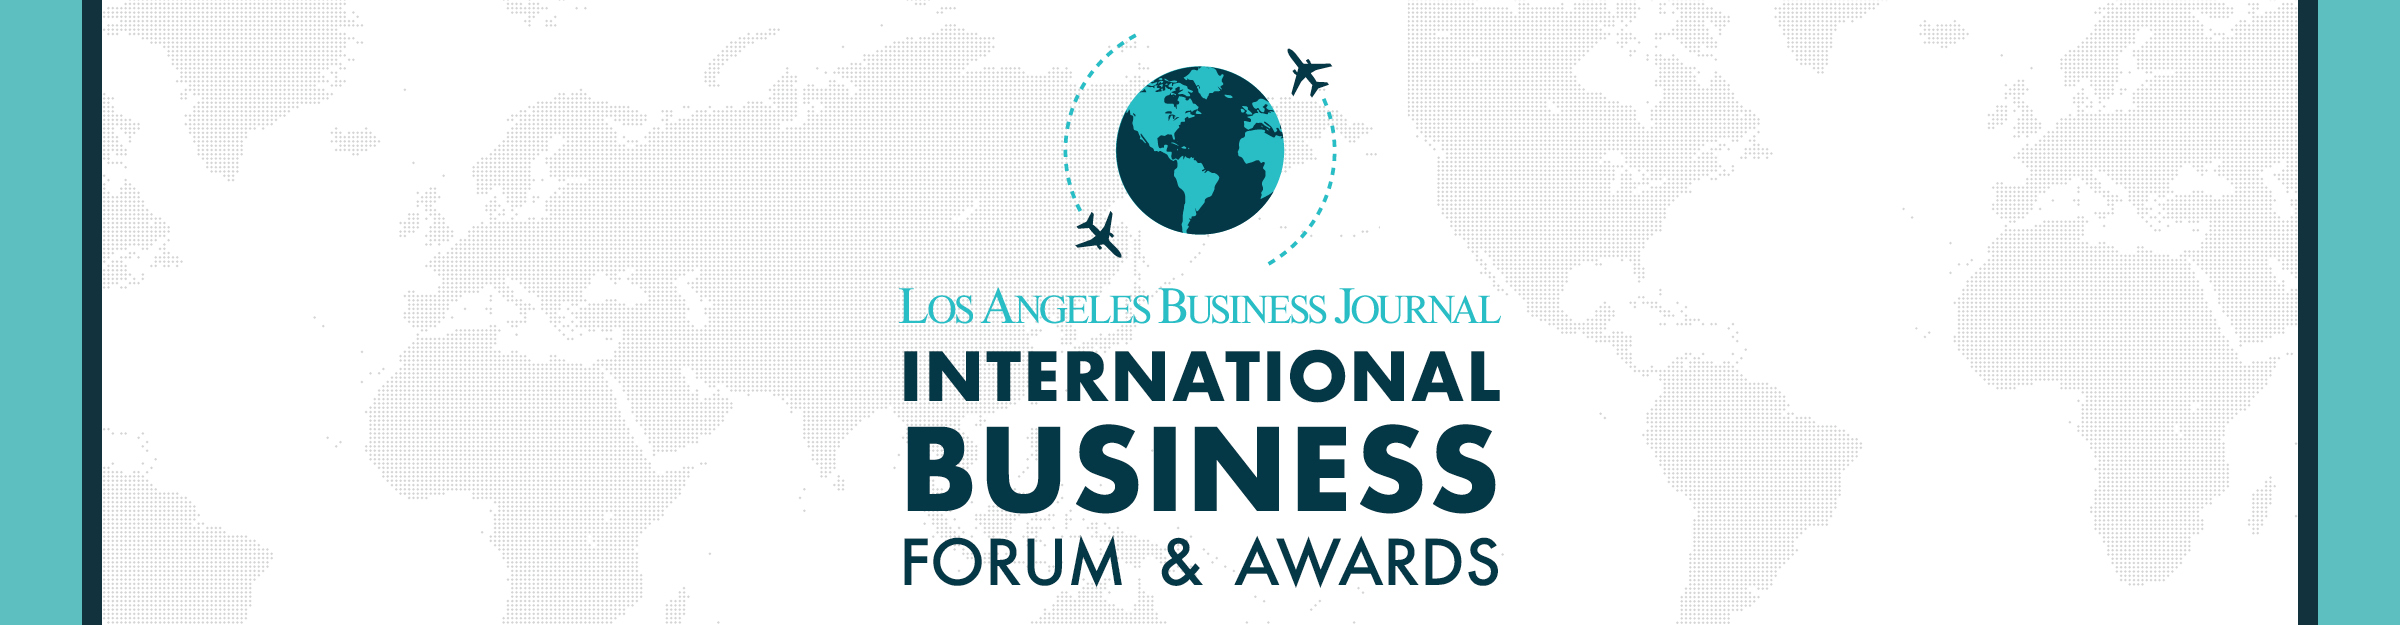 Los Angeles Business Journal International Business Forum and Awards Event Banner